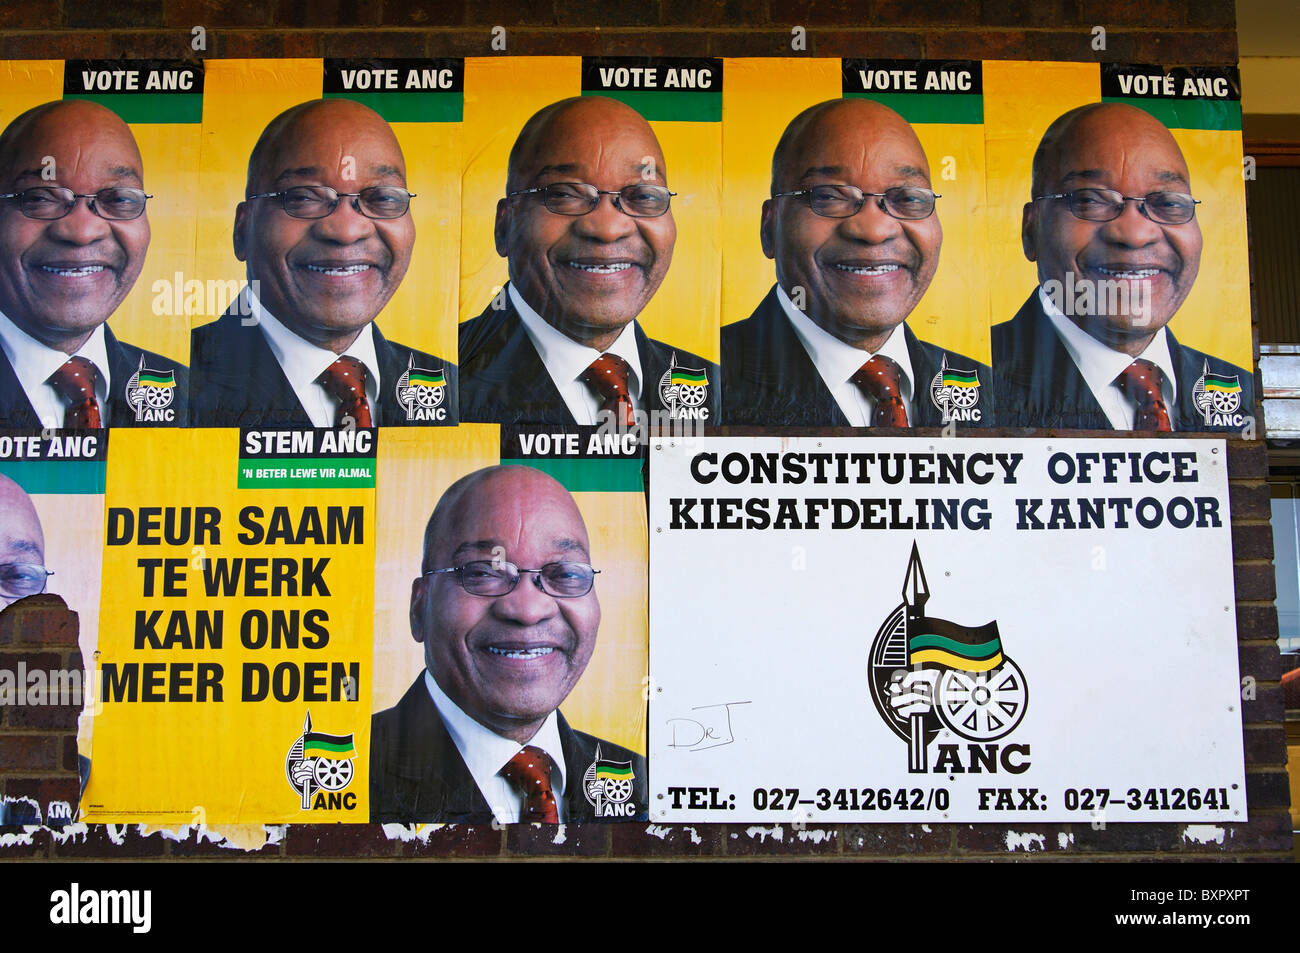 ANC Election poster showing President Jacob Zuma at an ANC constituency office in Cavlvinia, South Africa - Stock Image